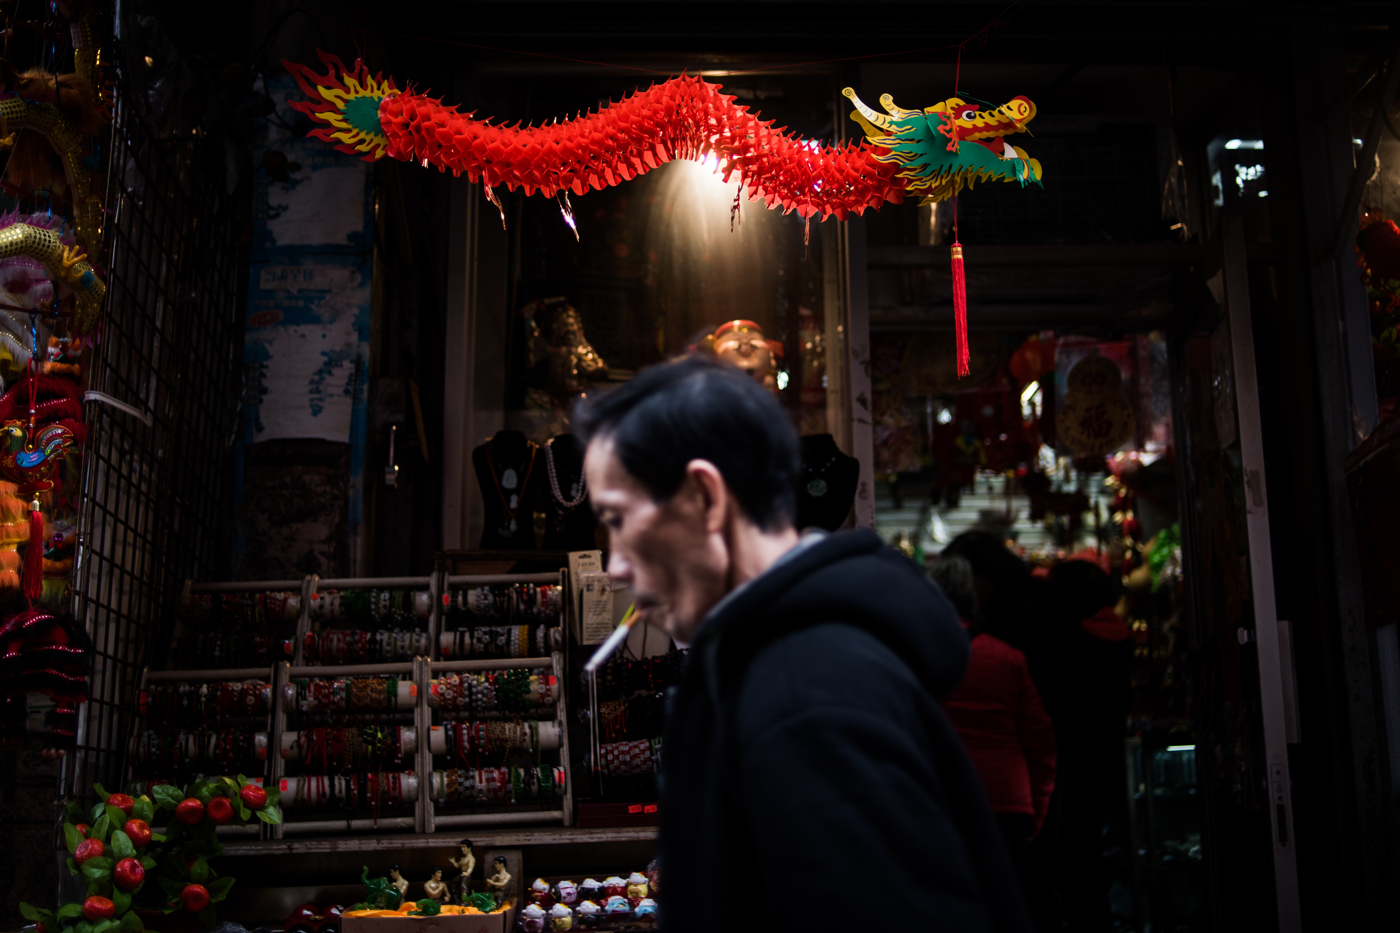 A dragon hangs outside a store in the Chinatown neighborhood of Manhattan in New York, NY.